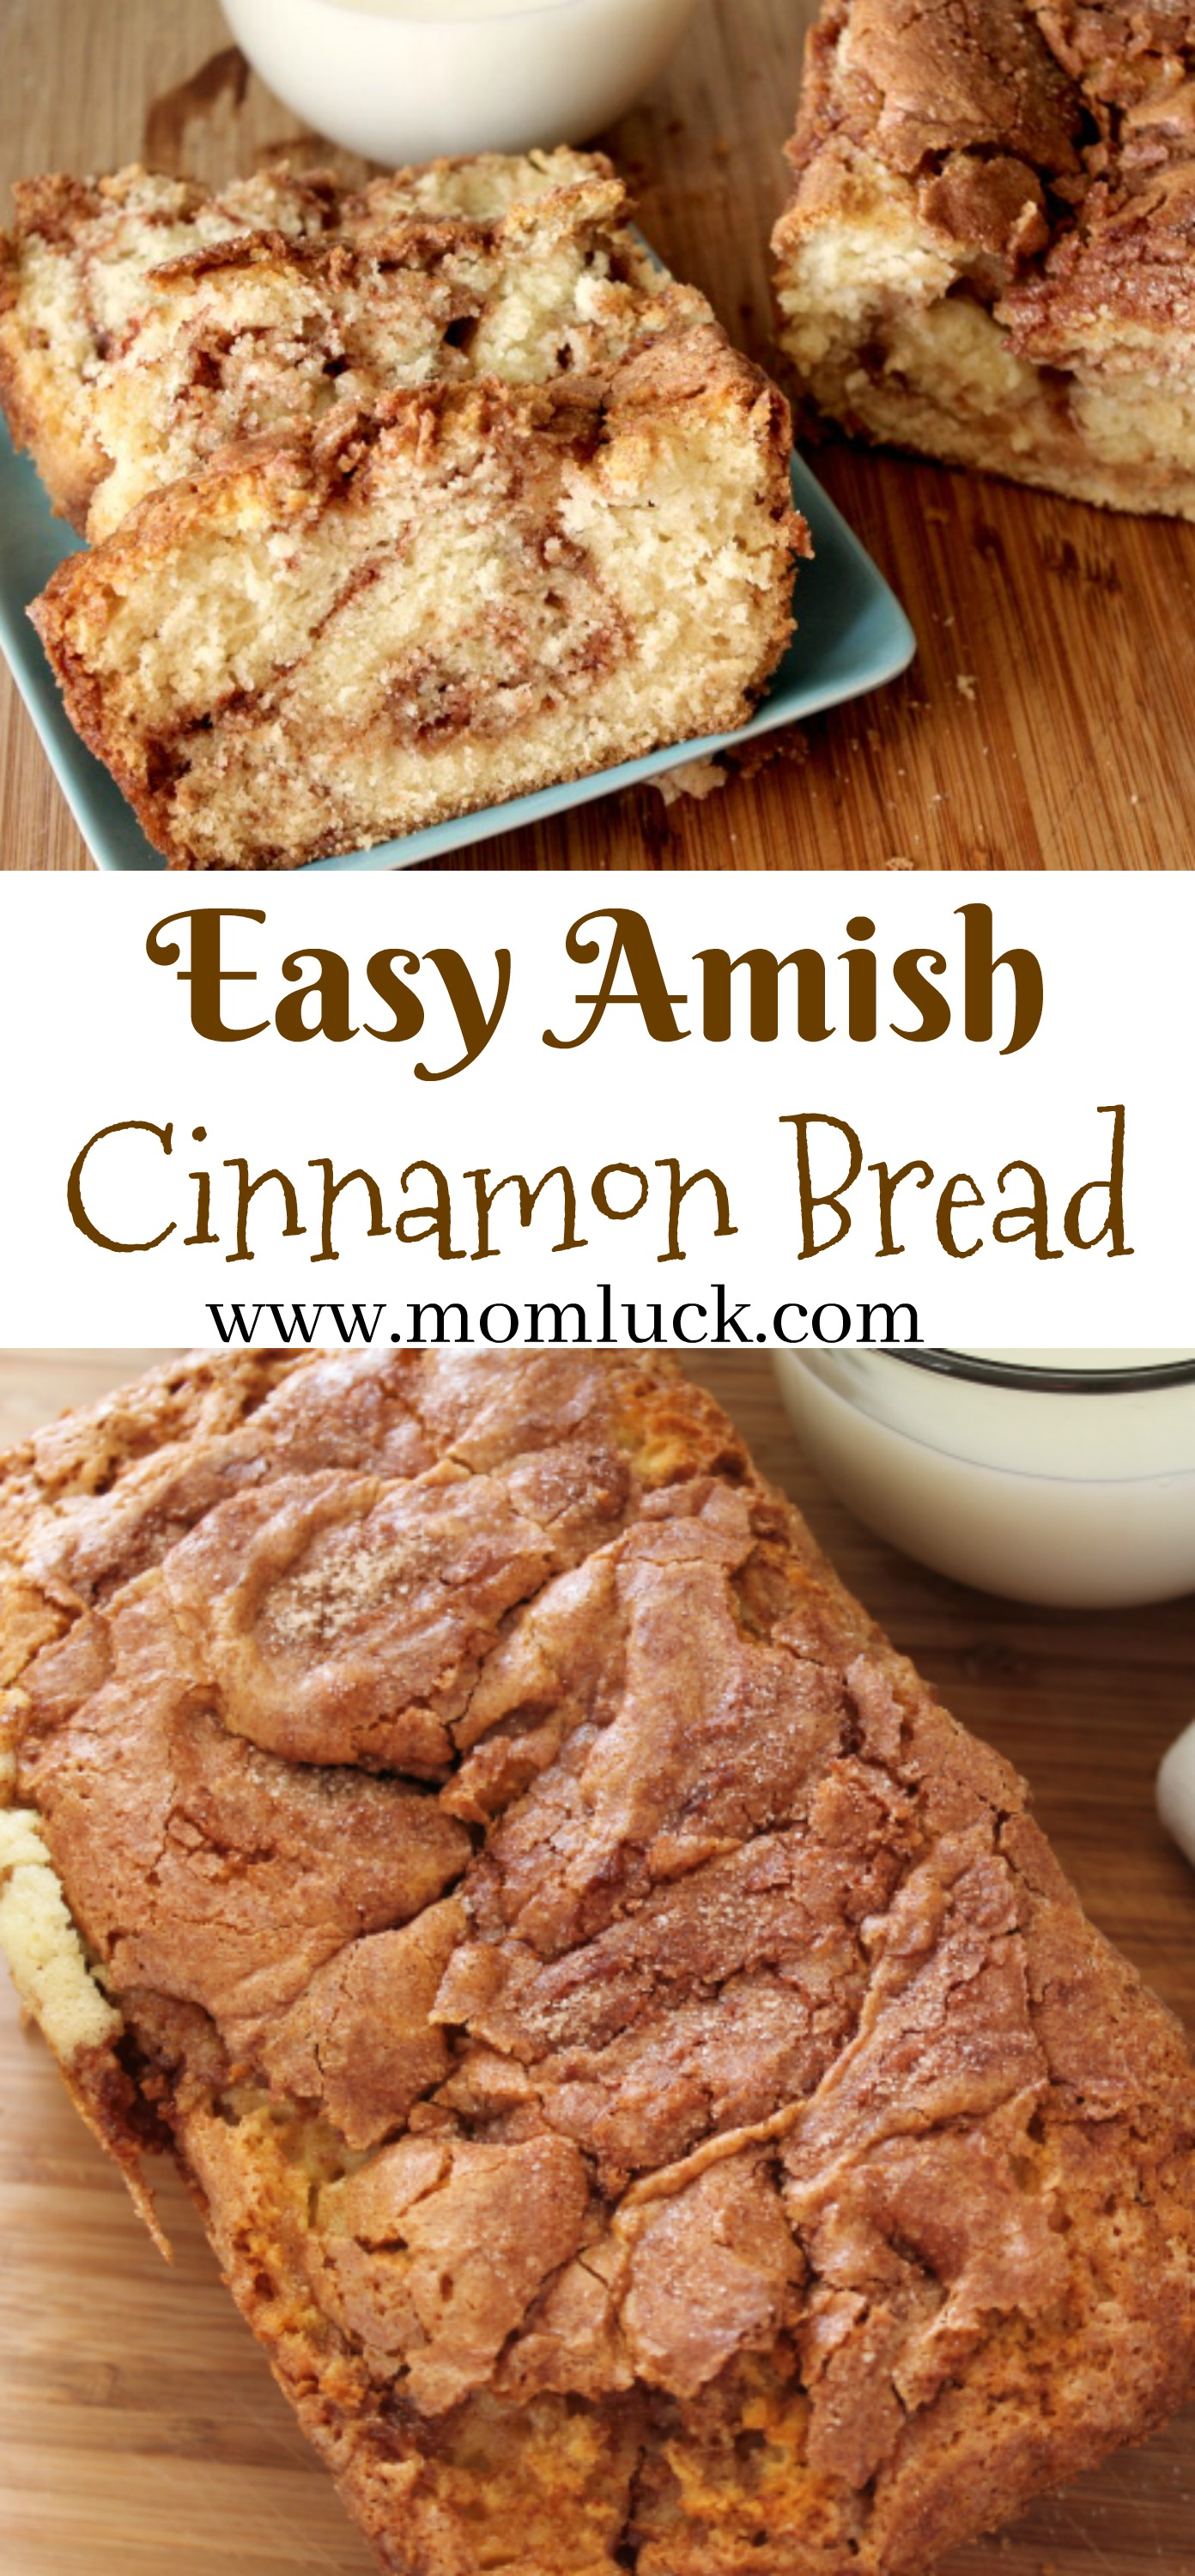 Easy Amish Cinnamon Bread Recipe-Mom Luck Blog